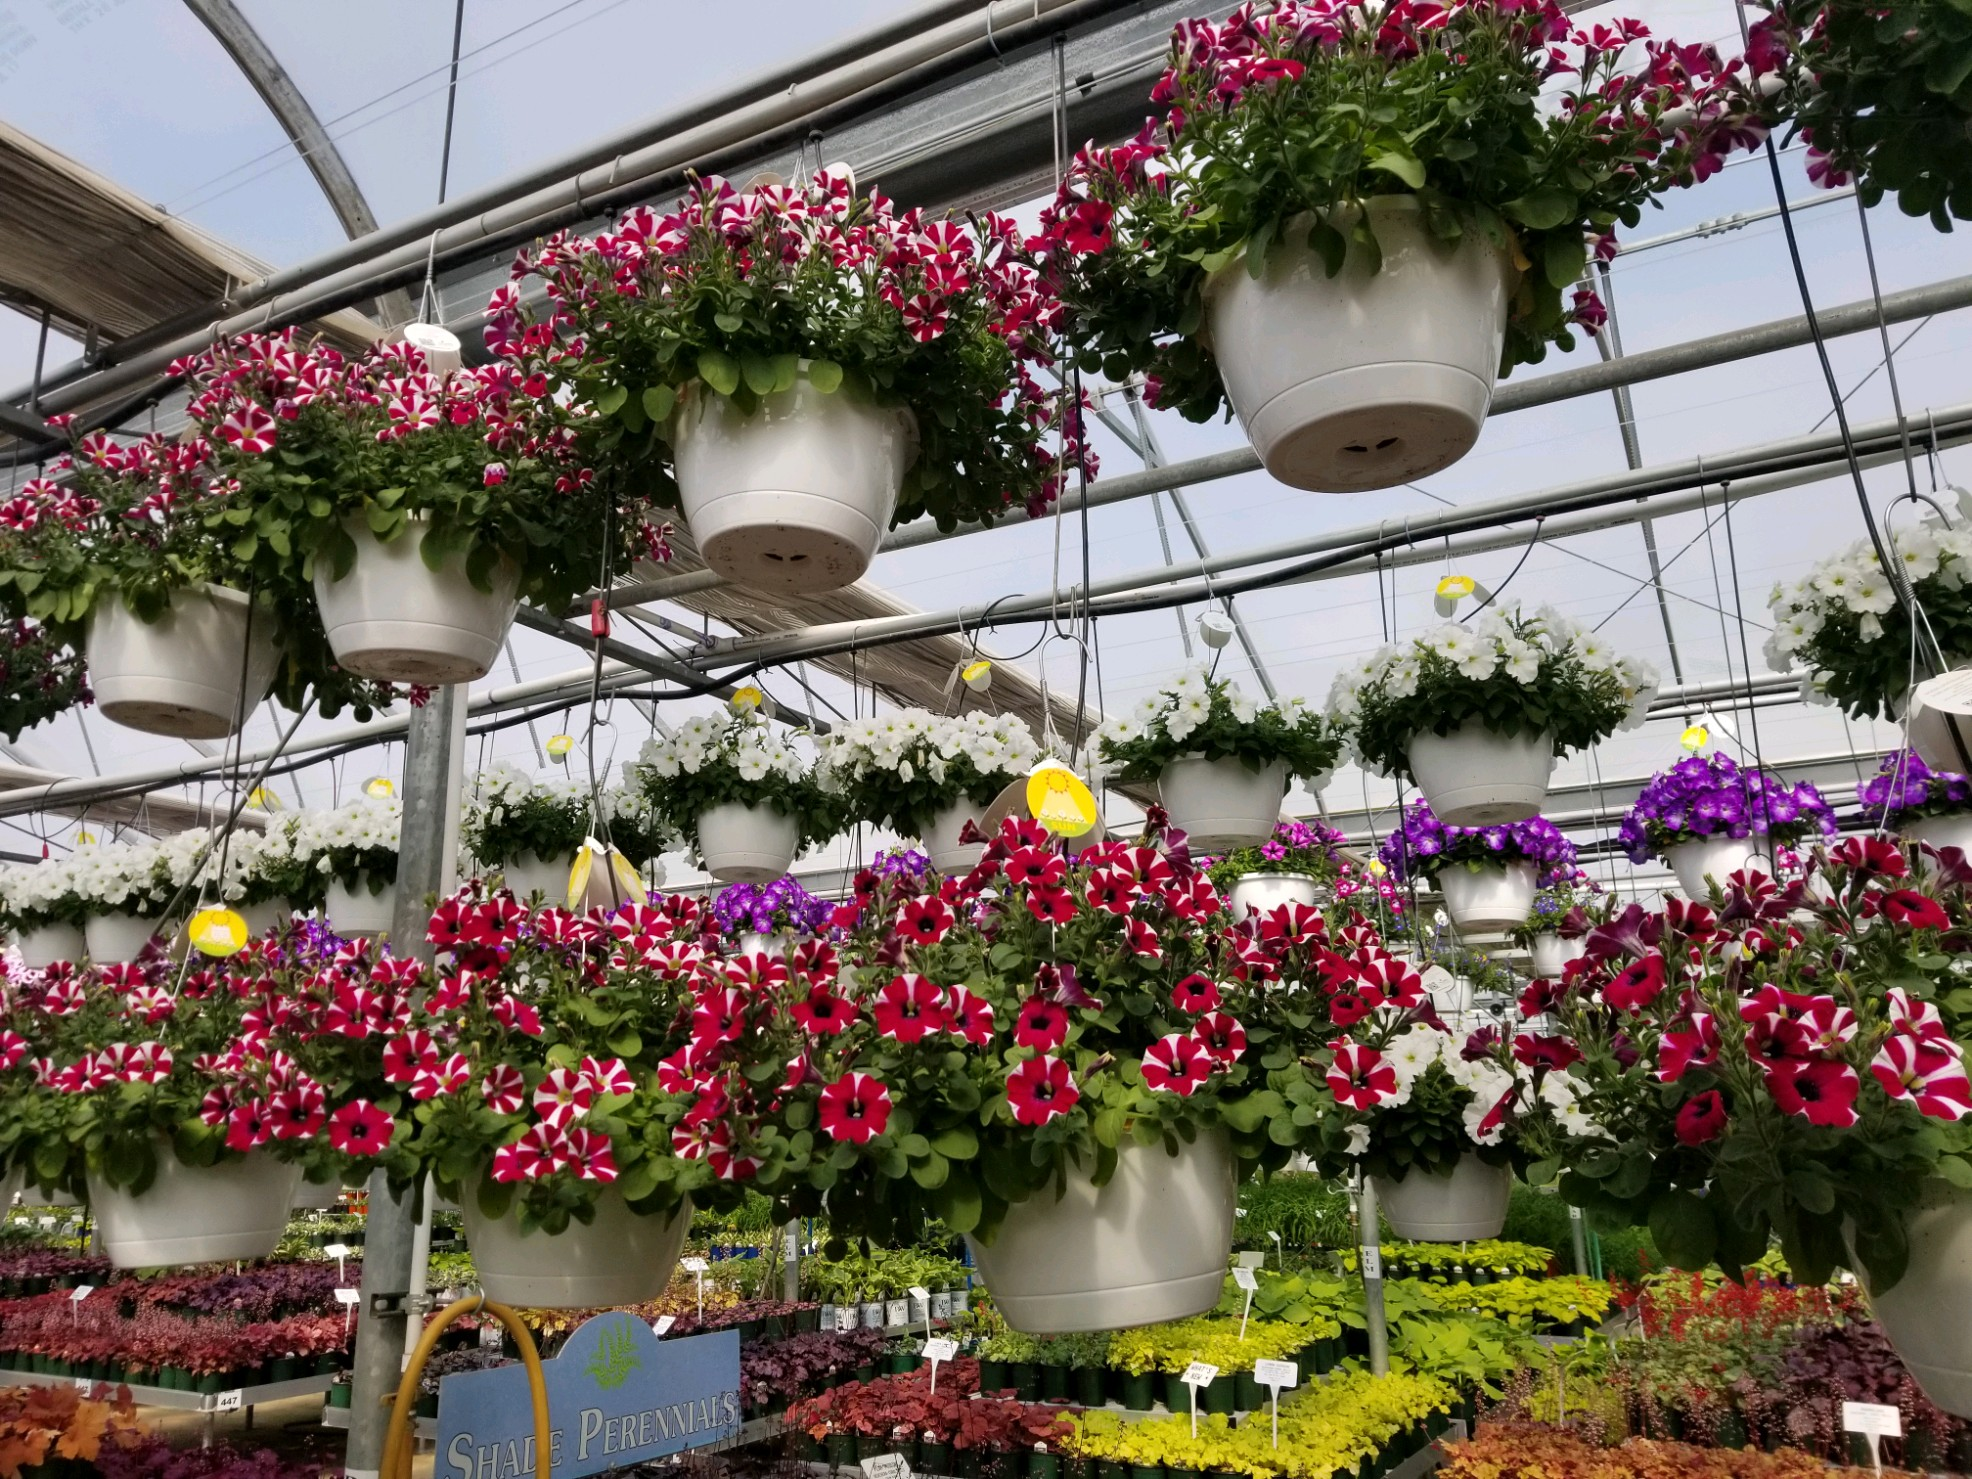 pictured are hanging plants and flowers in a greenhouse outside